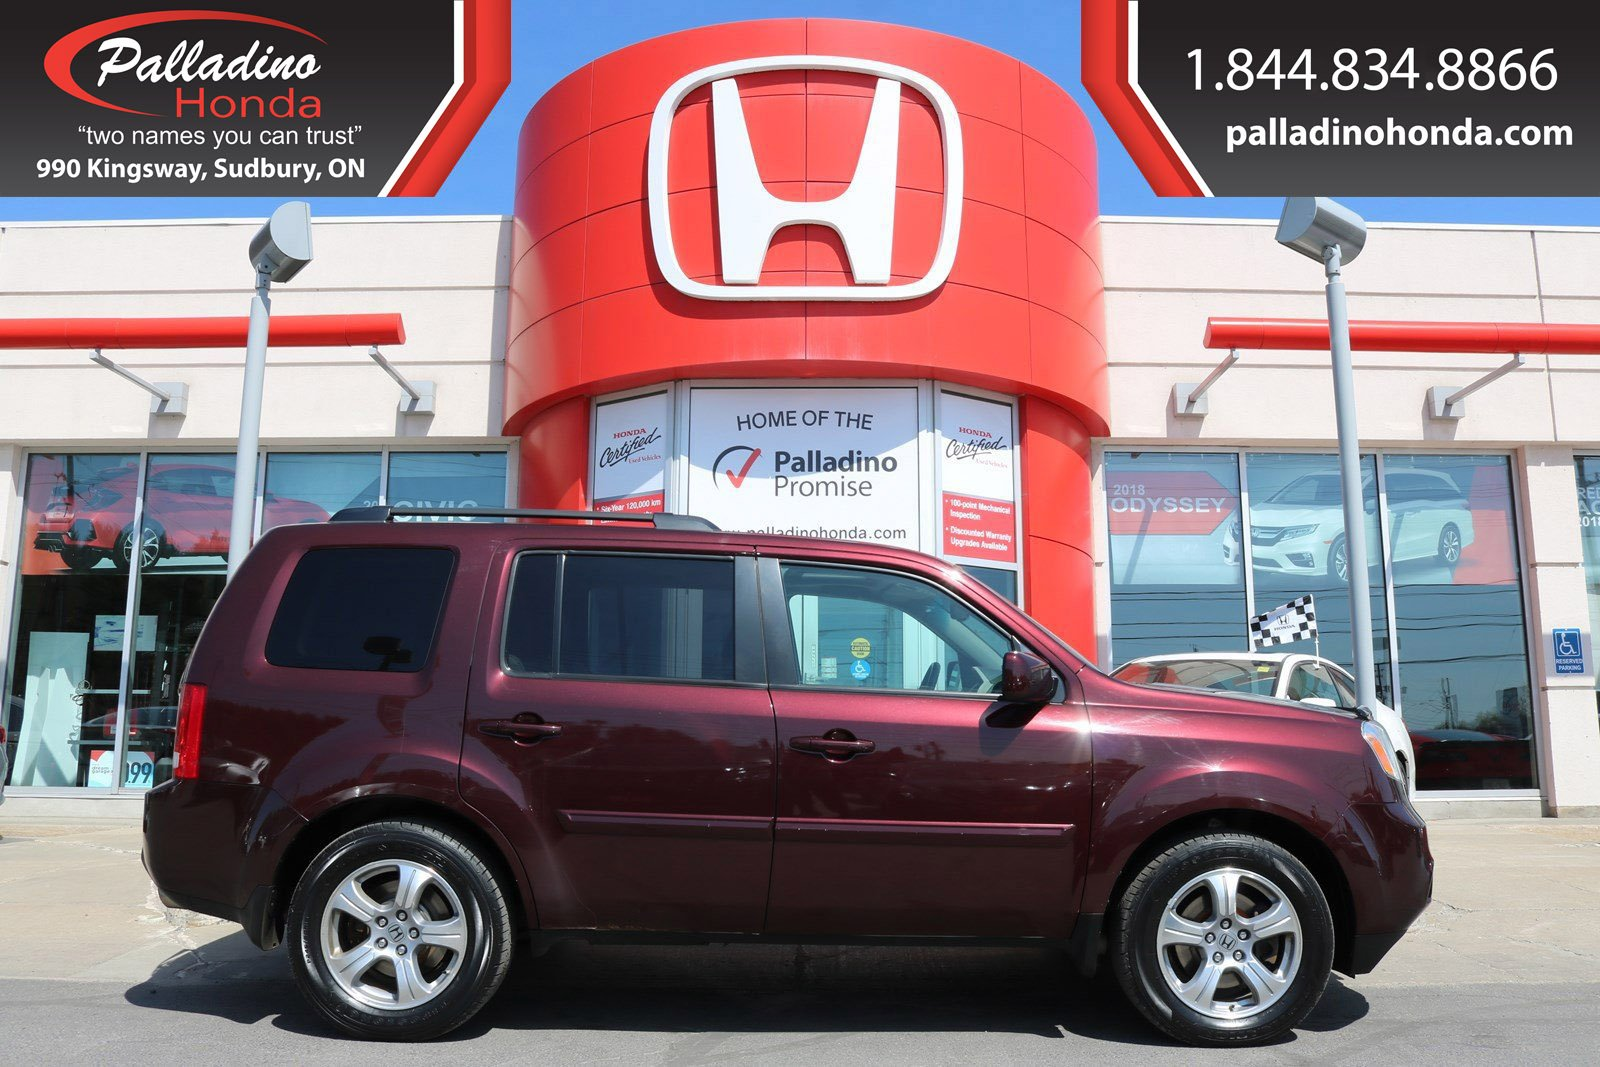 Pre-Owned 2013 Honda Pilot EX-L - BACK UP CAMERA 3RD ROW SEATING SUNROOF -